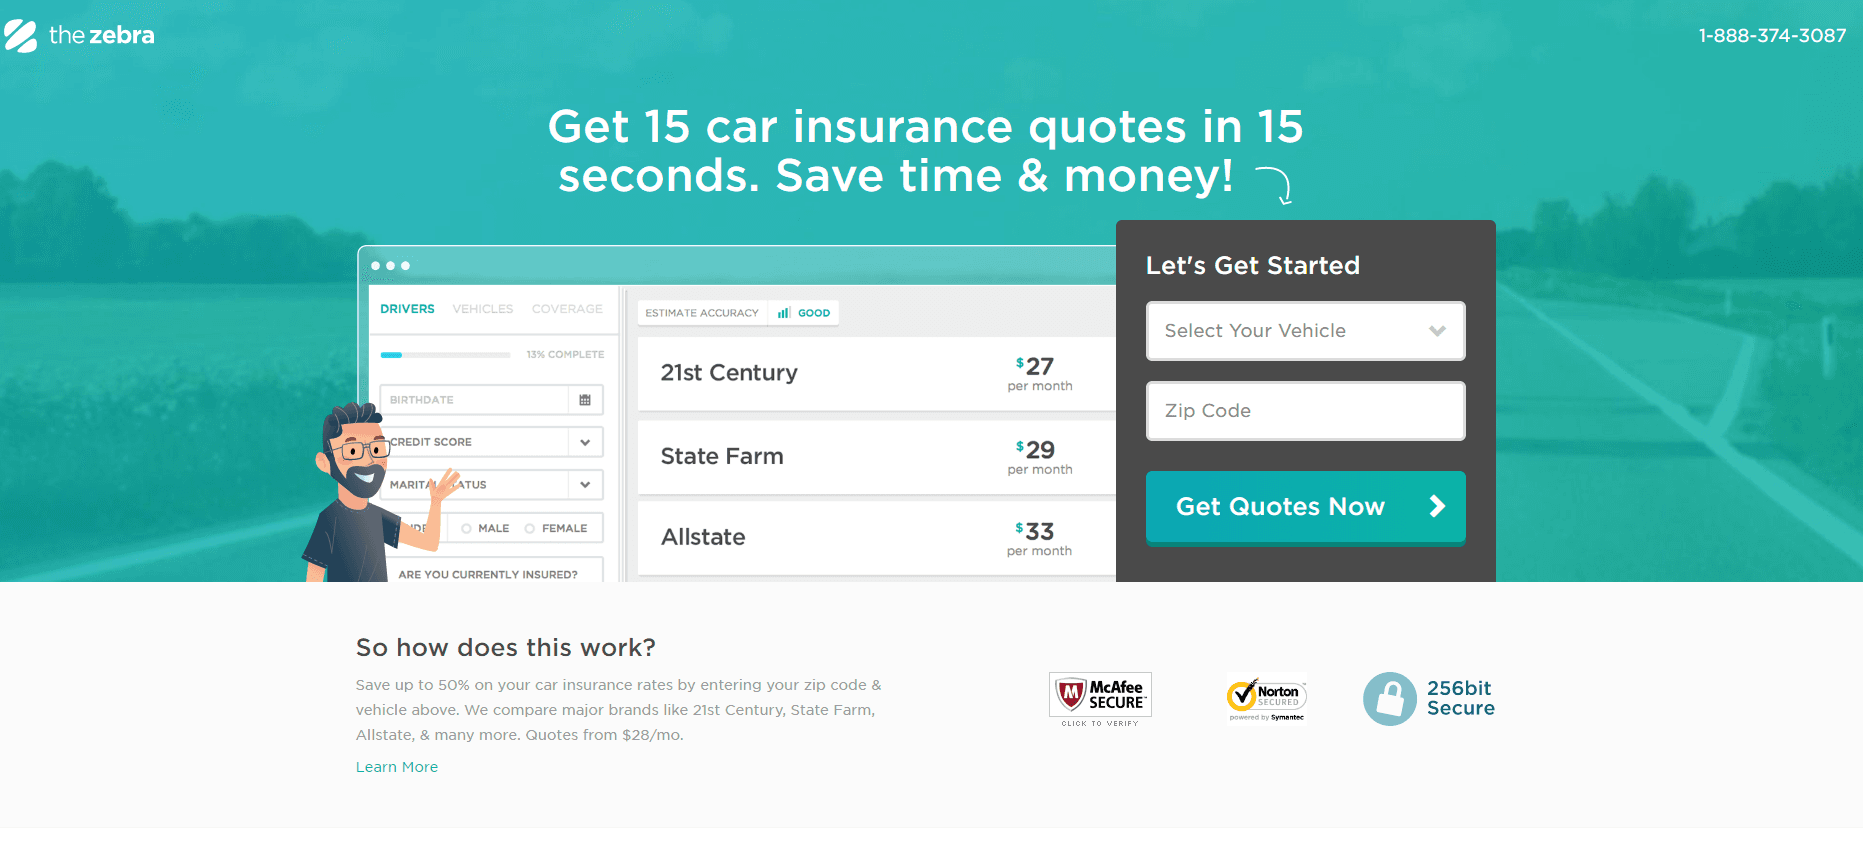 This picture shows marketers how car insurance companies can generate sales leads from landing pages.